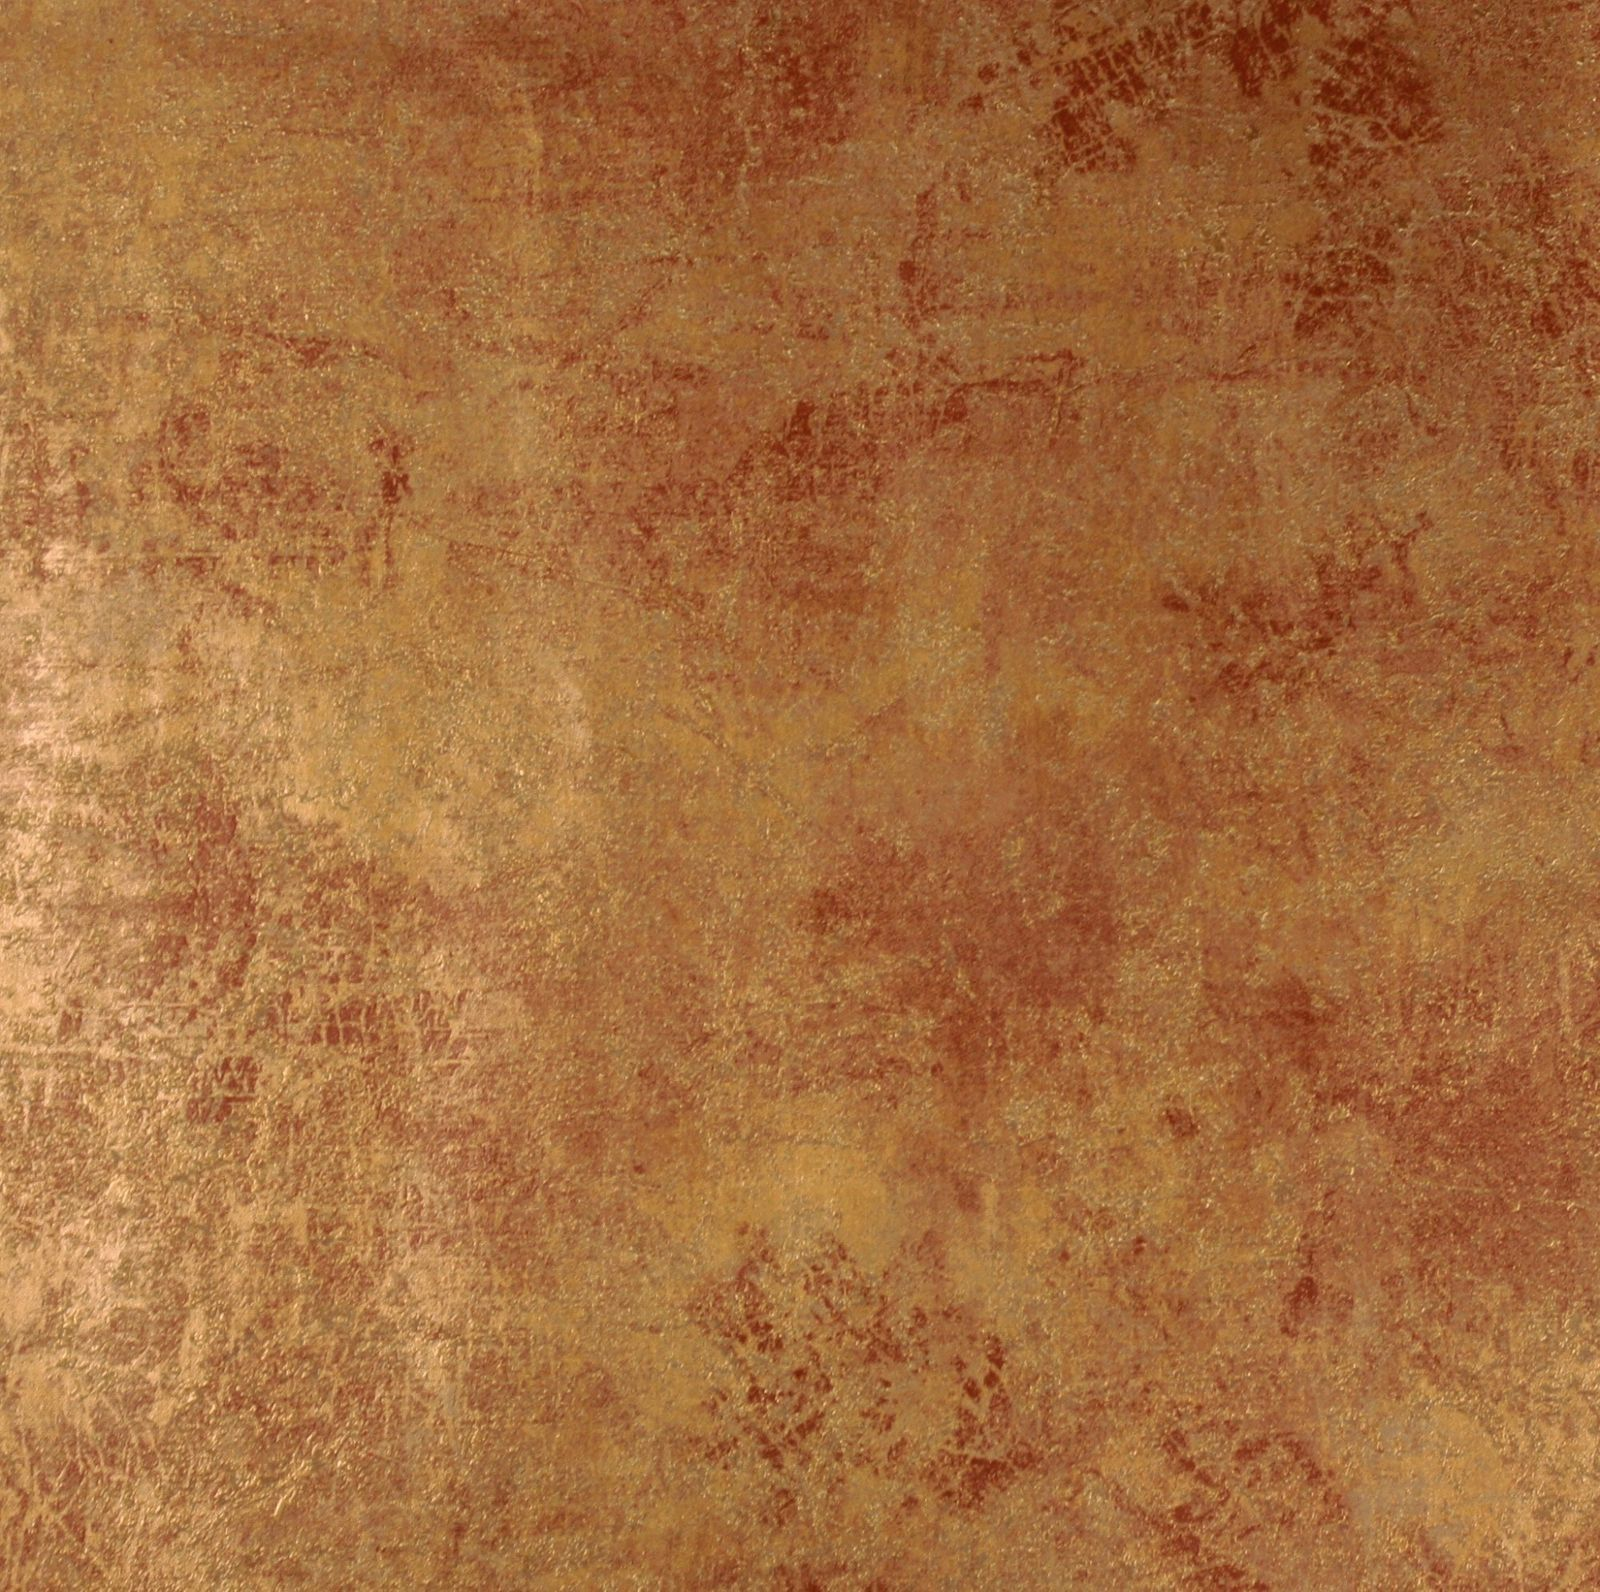 Wallpaper non woven marburg la veneziana 77706 gold for Goldene tapete